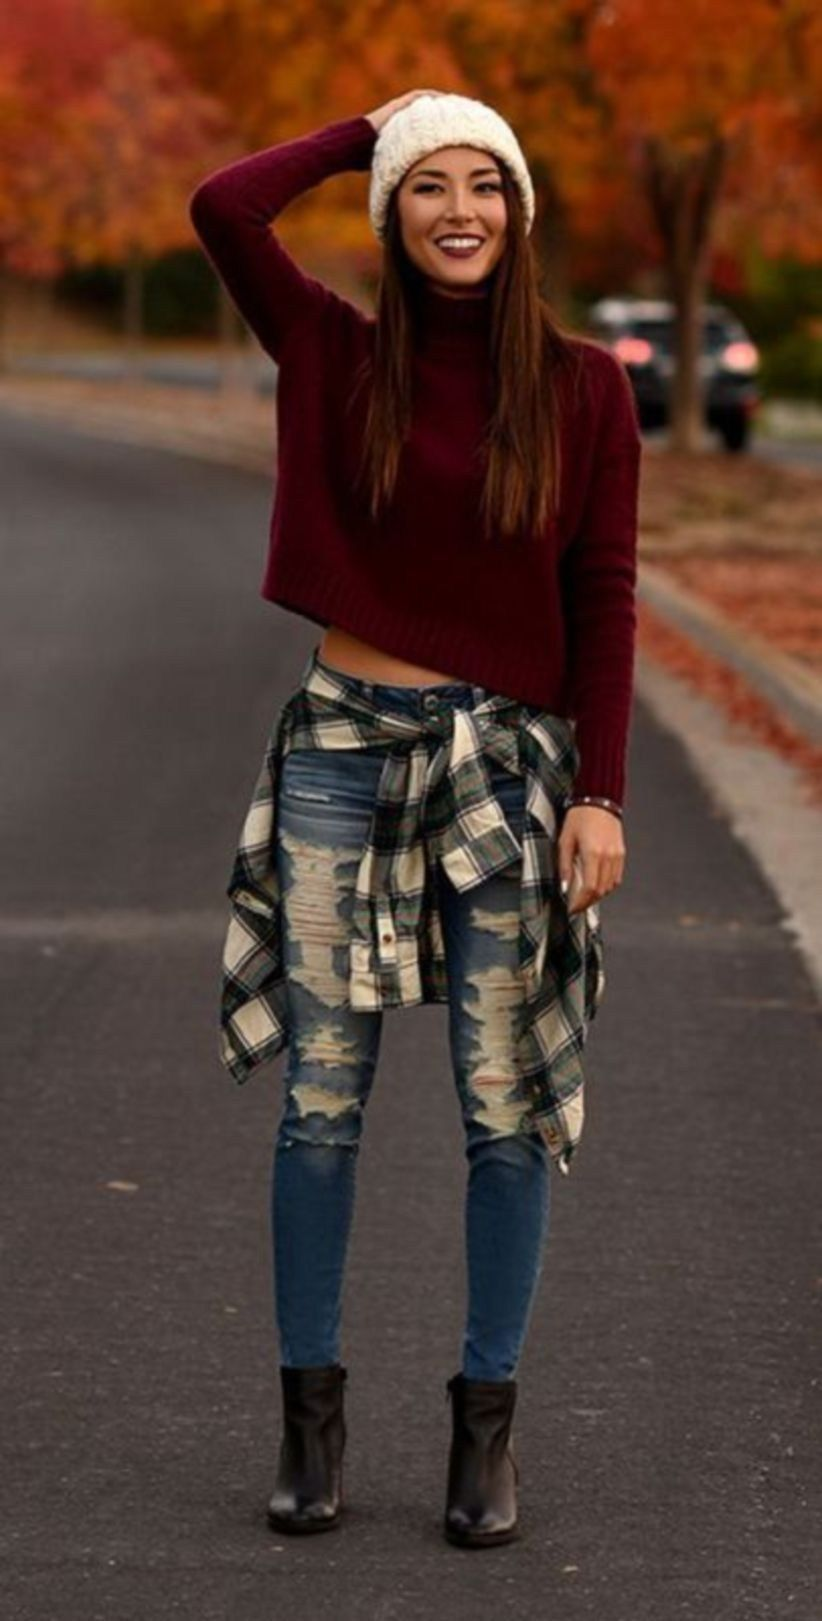 Flannel shirt outfit ideas  Awesome Flannel Outfit Ideas For Fall    Cooattire